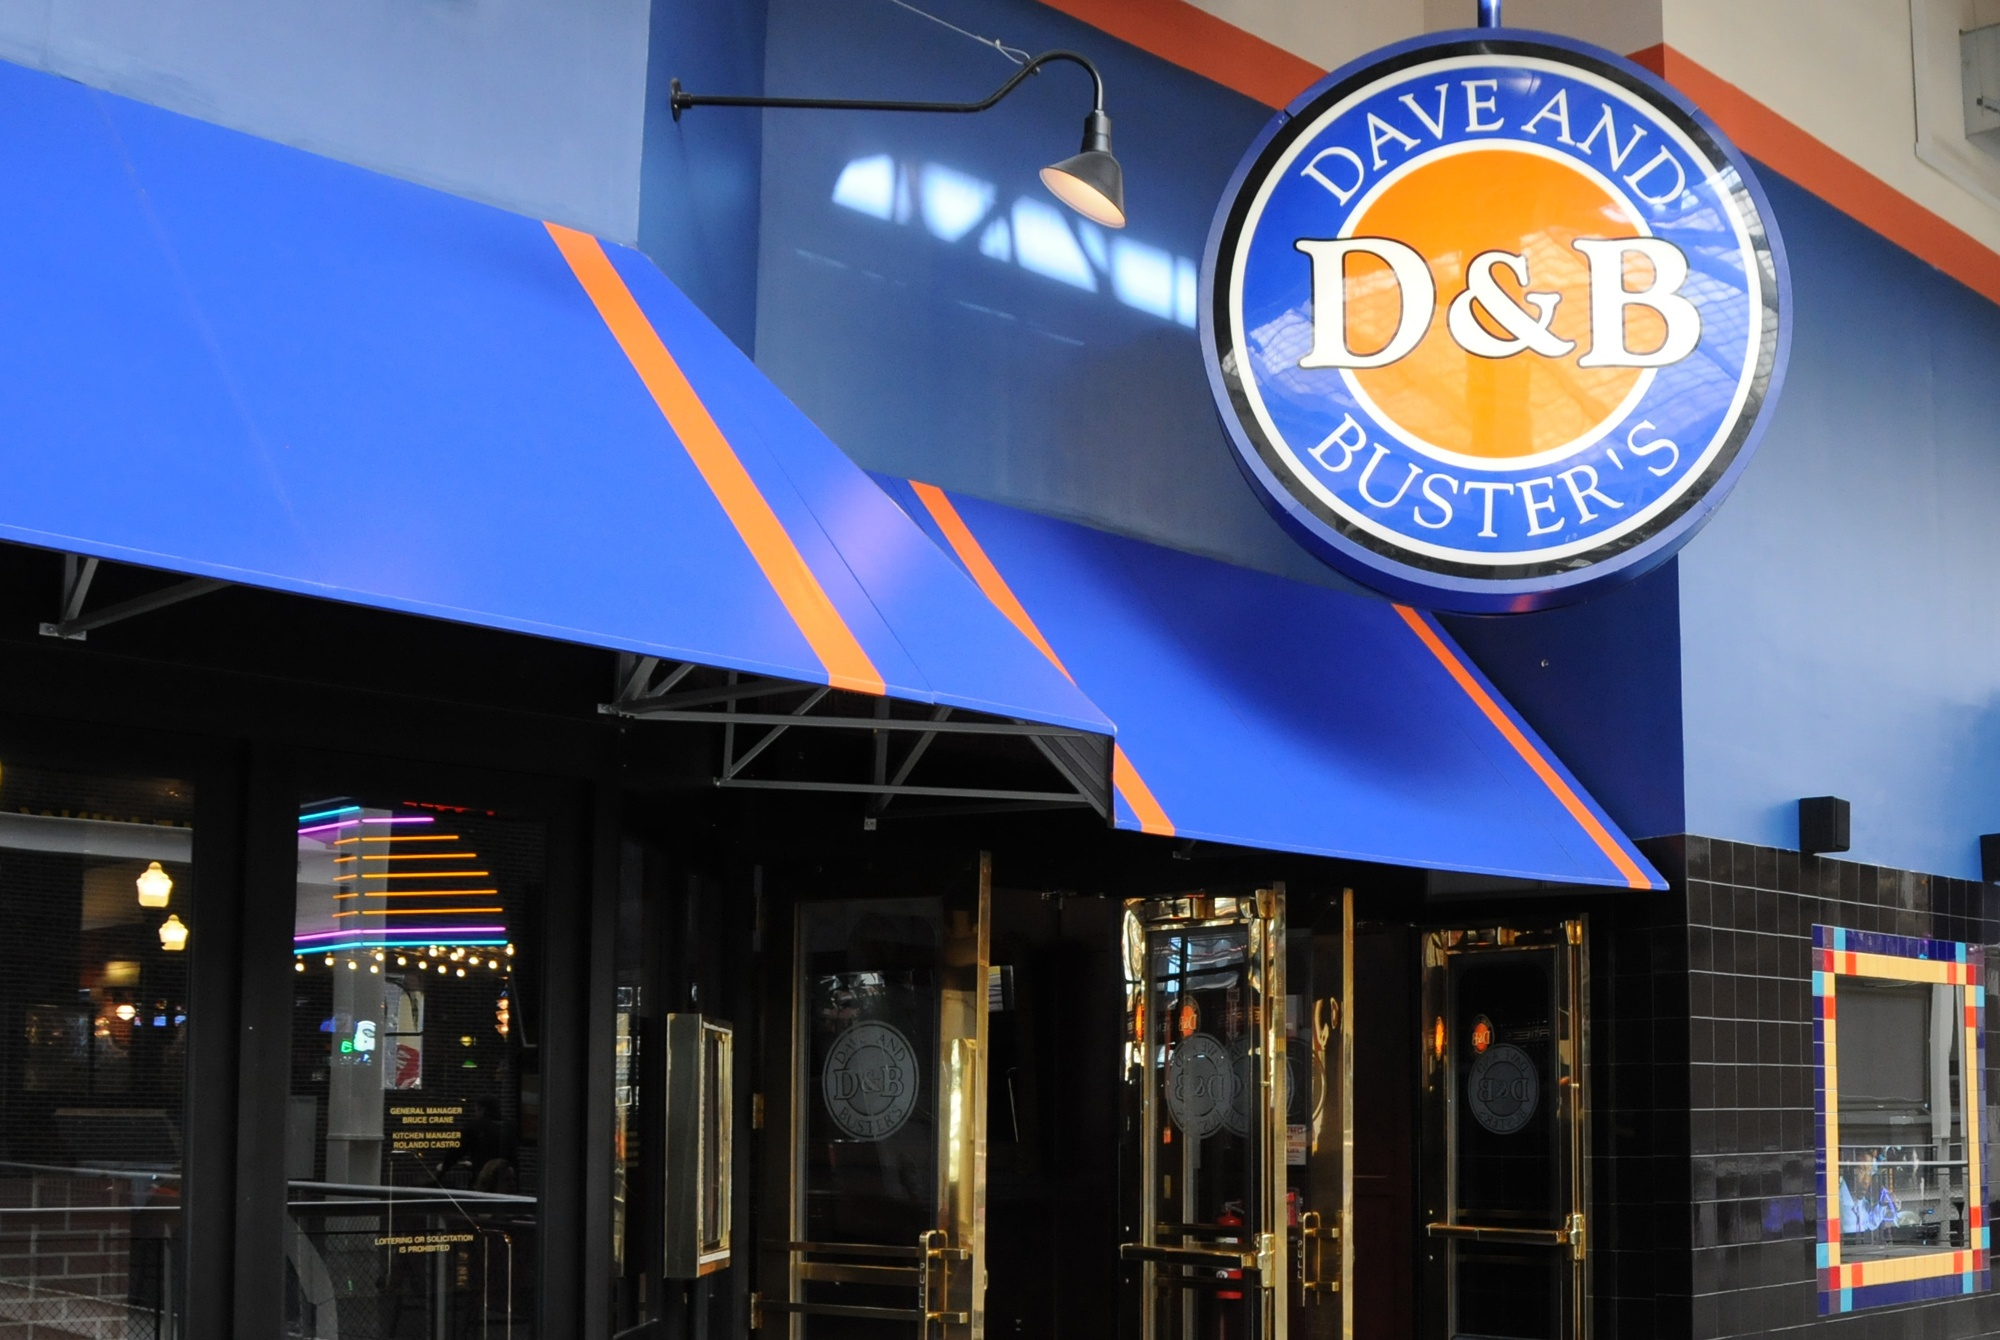 Dave And Busters Coupons (Printable Coupons) - 2018 - Free Printable Dave And Busters Coupons